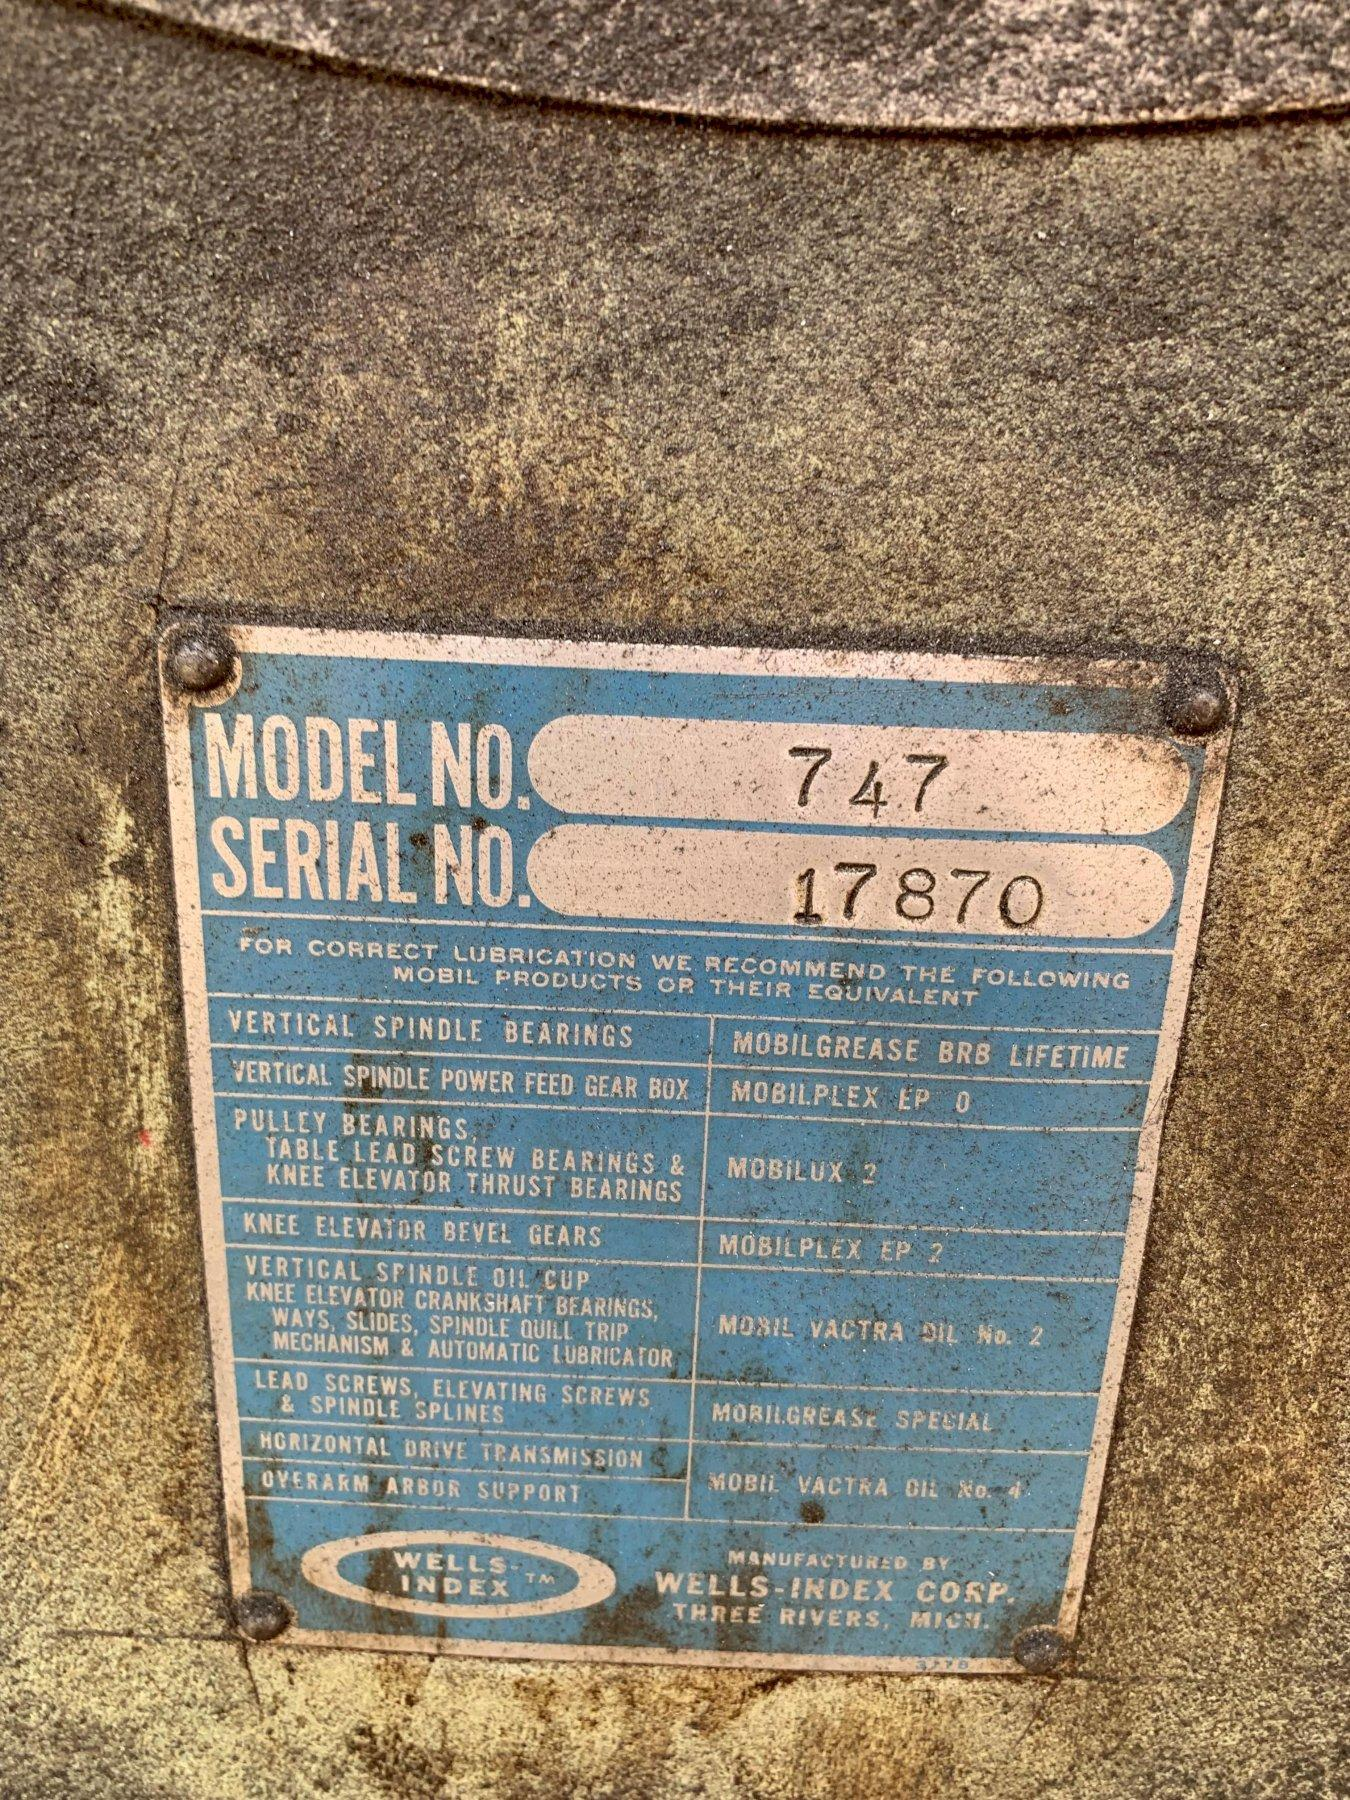 1 - PREOWNED WELLS INDEX VERTICAL MILL, MODEL #: 747, S/N: 17870